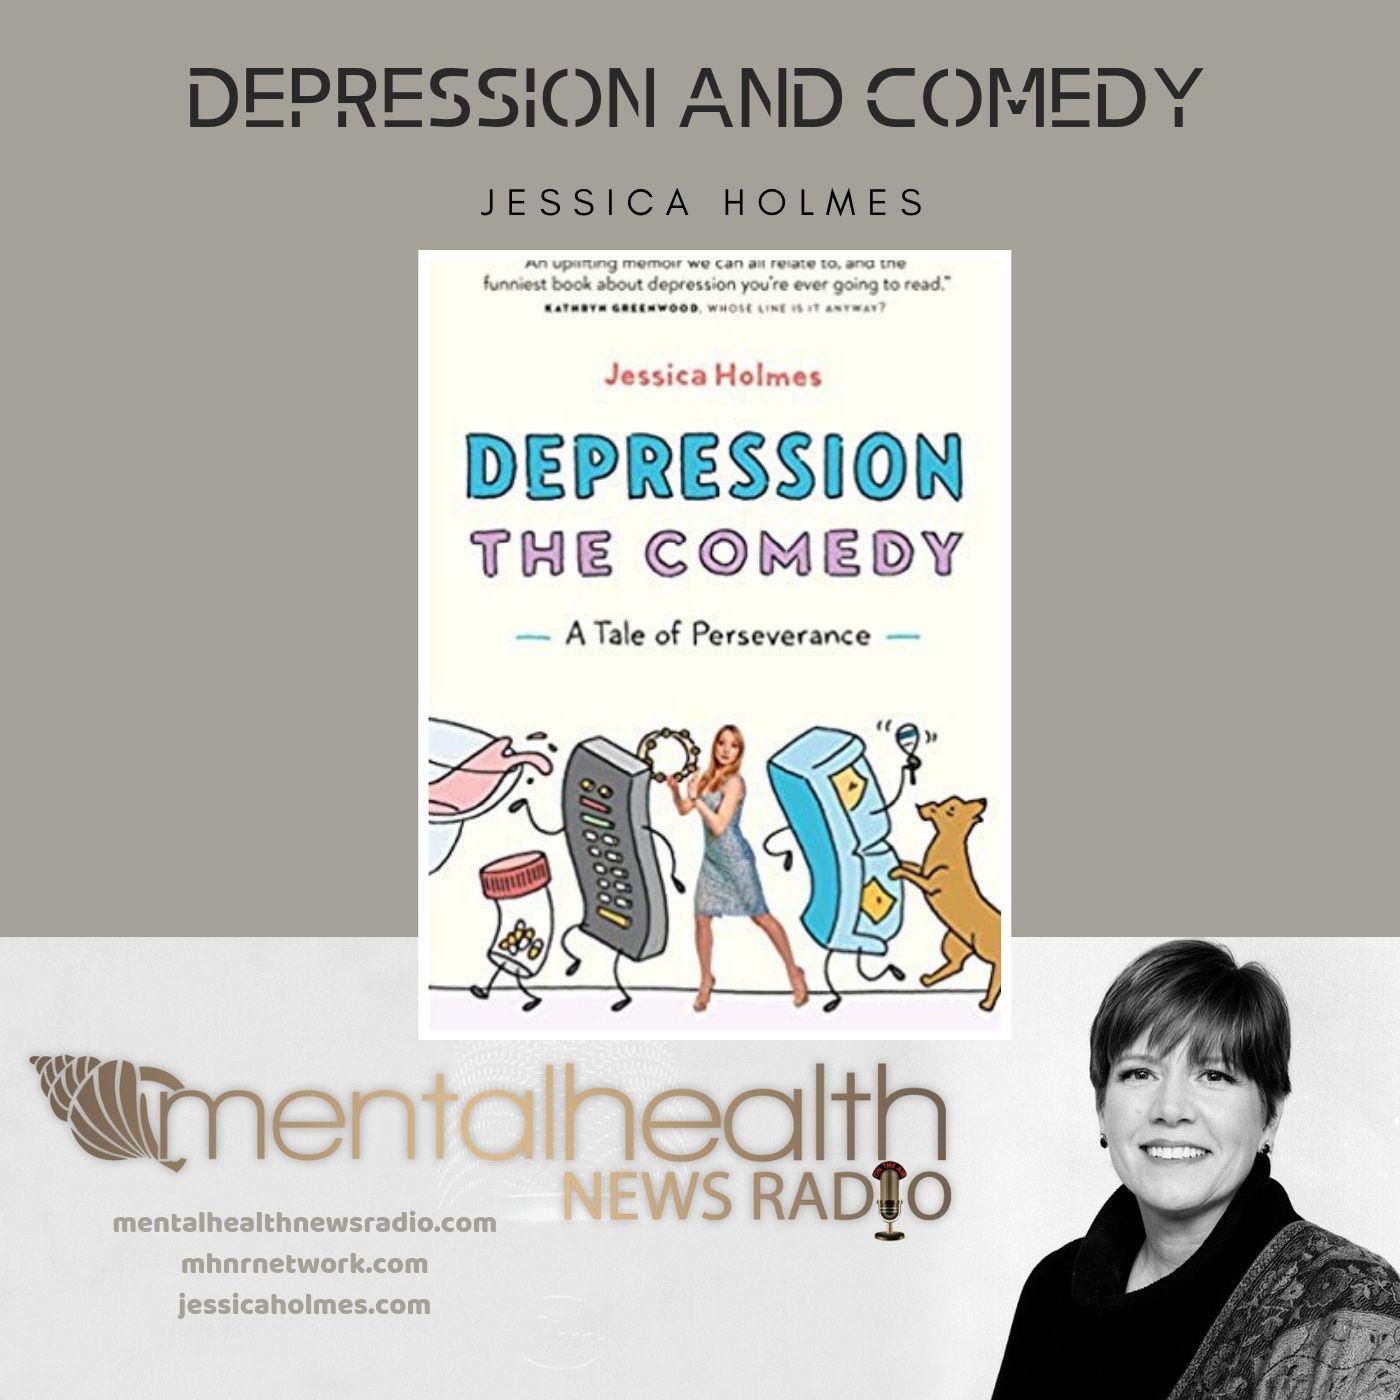 Mental Health News Radio - Depression and Comedy with Jessica Holmes